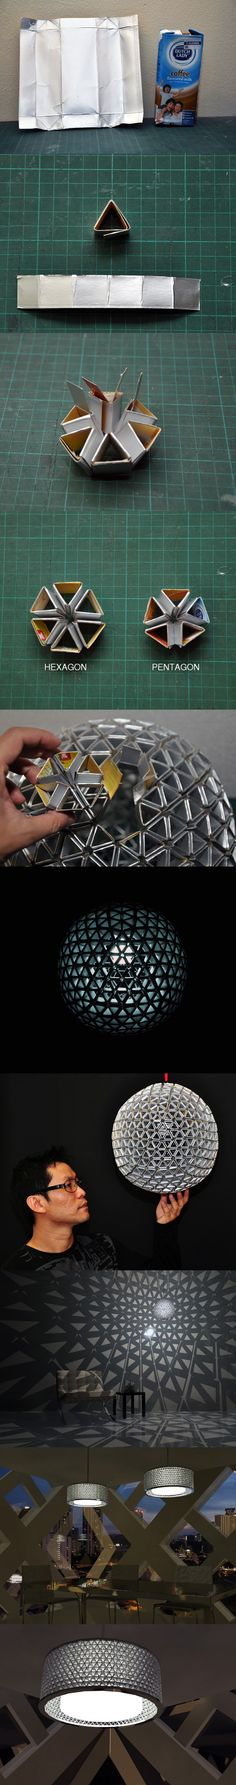 Cool lamps made out of recycled packaging